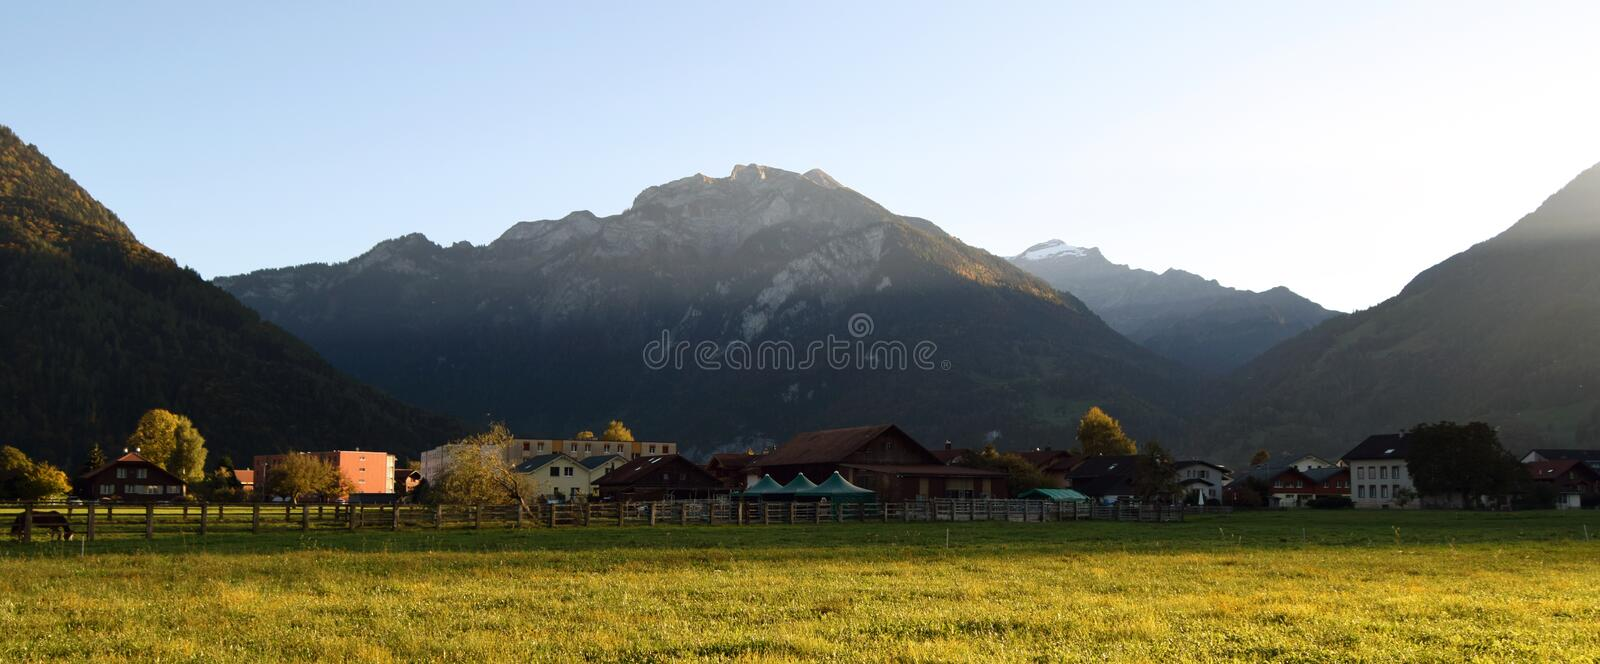 Landscape with grass, mountains, houses, trees and horses royalty free stock images